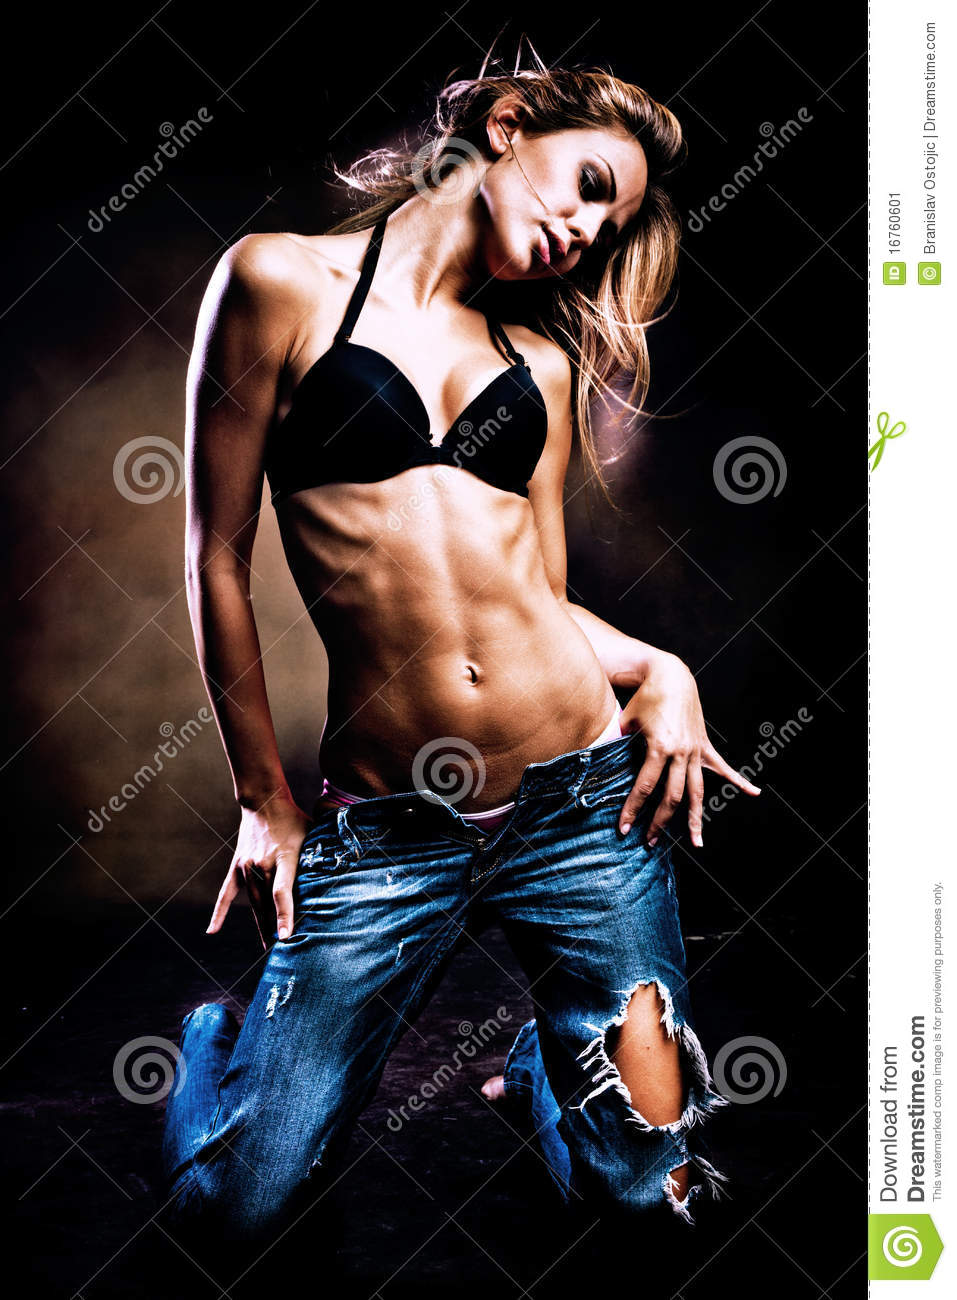 Hot dance stock image image of hair dancer blond down for 123 get on the dance floor song download